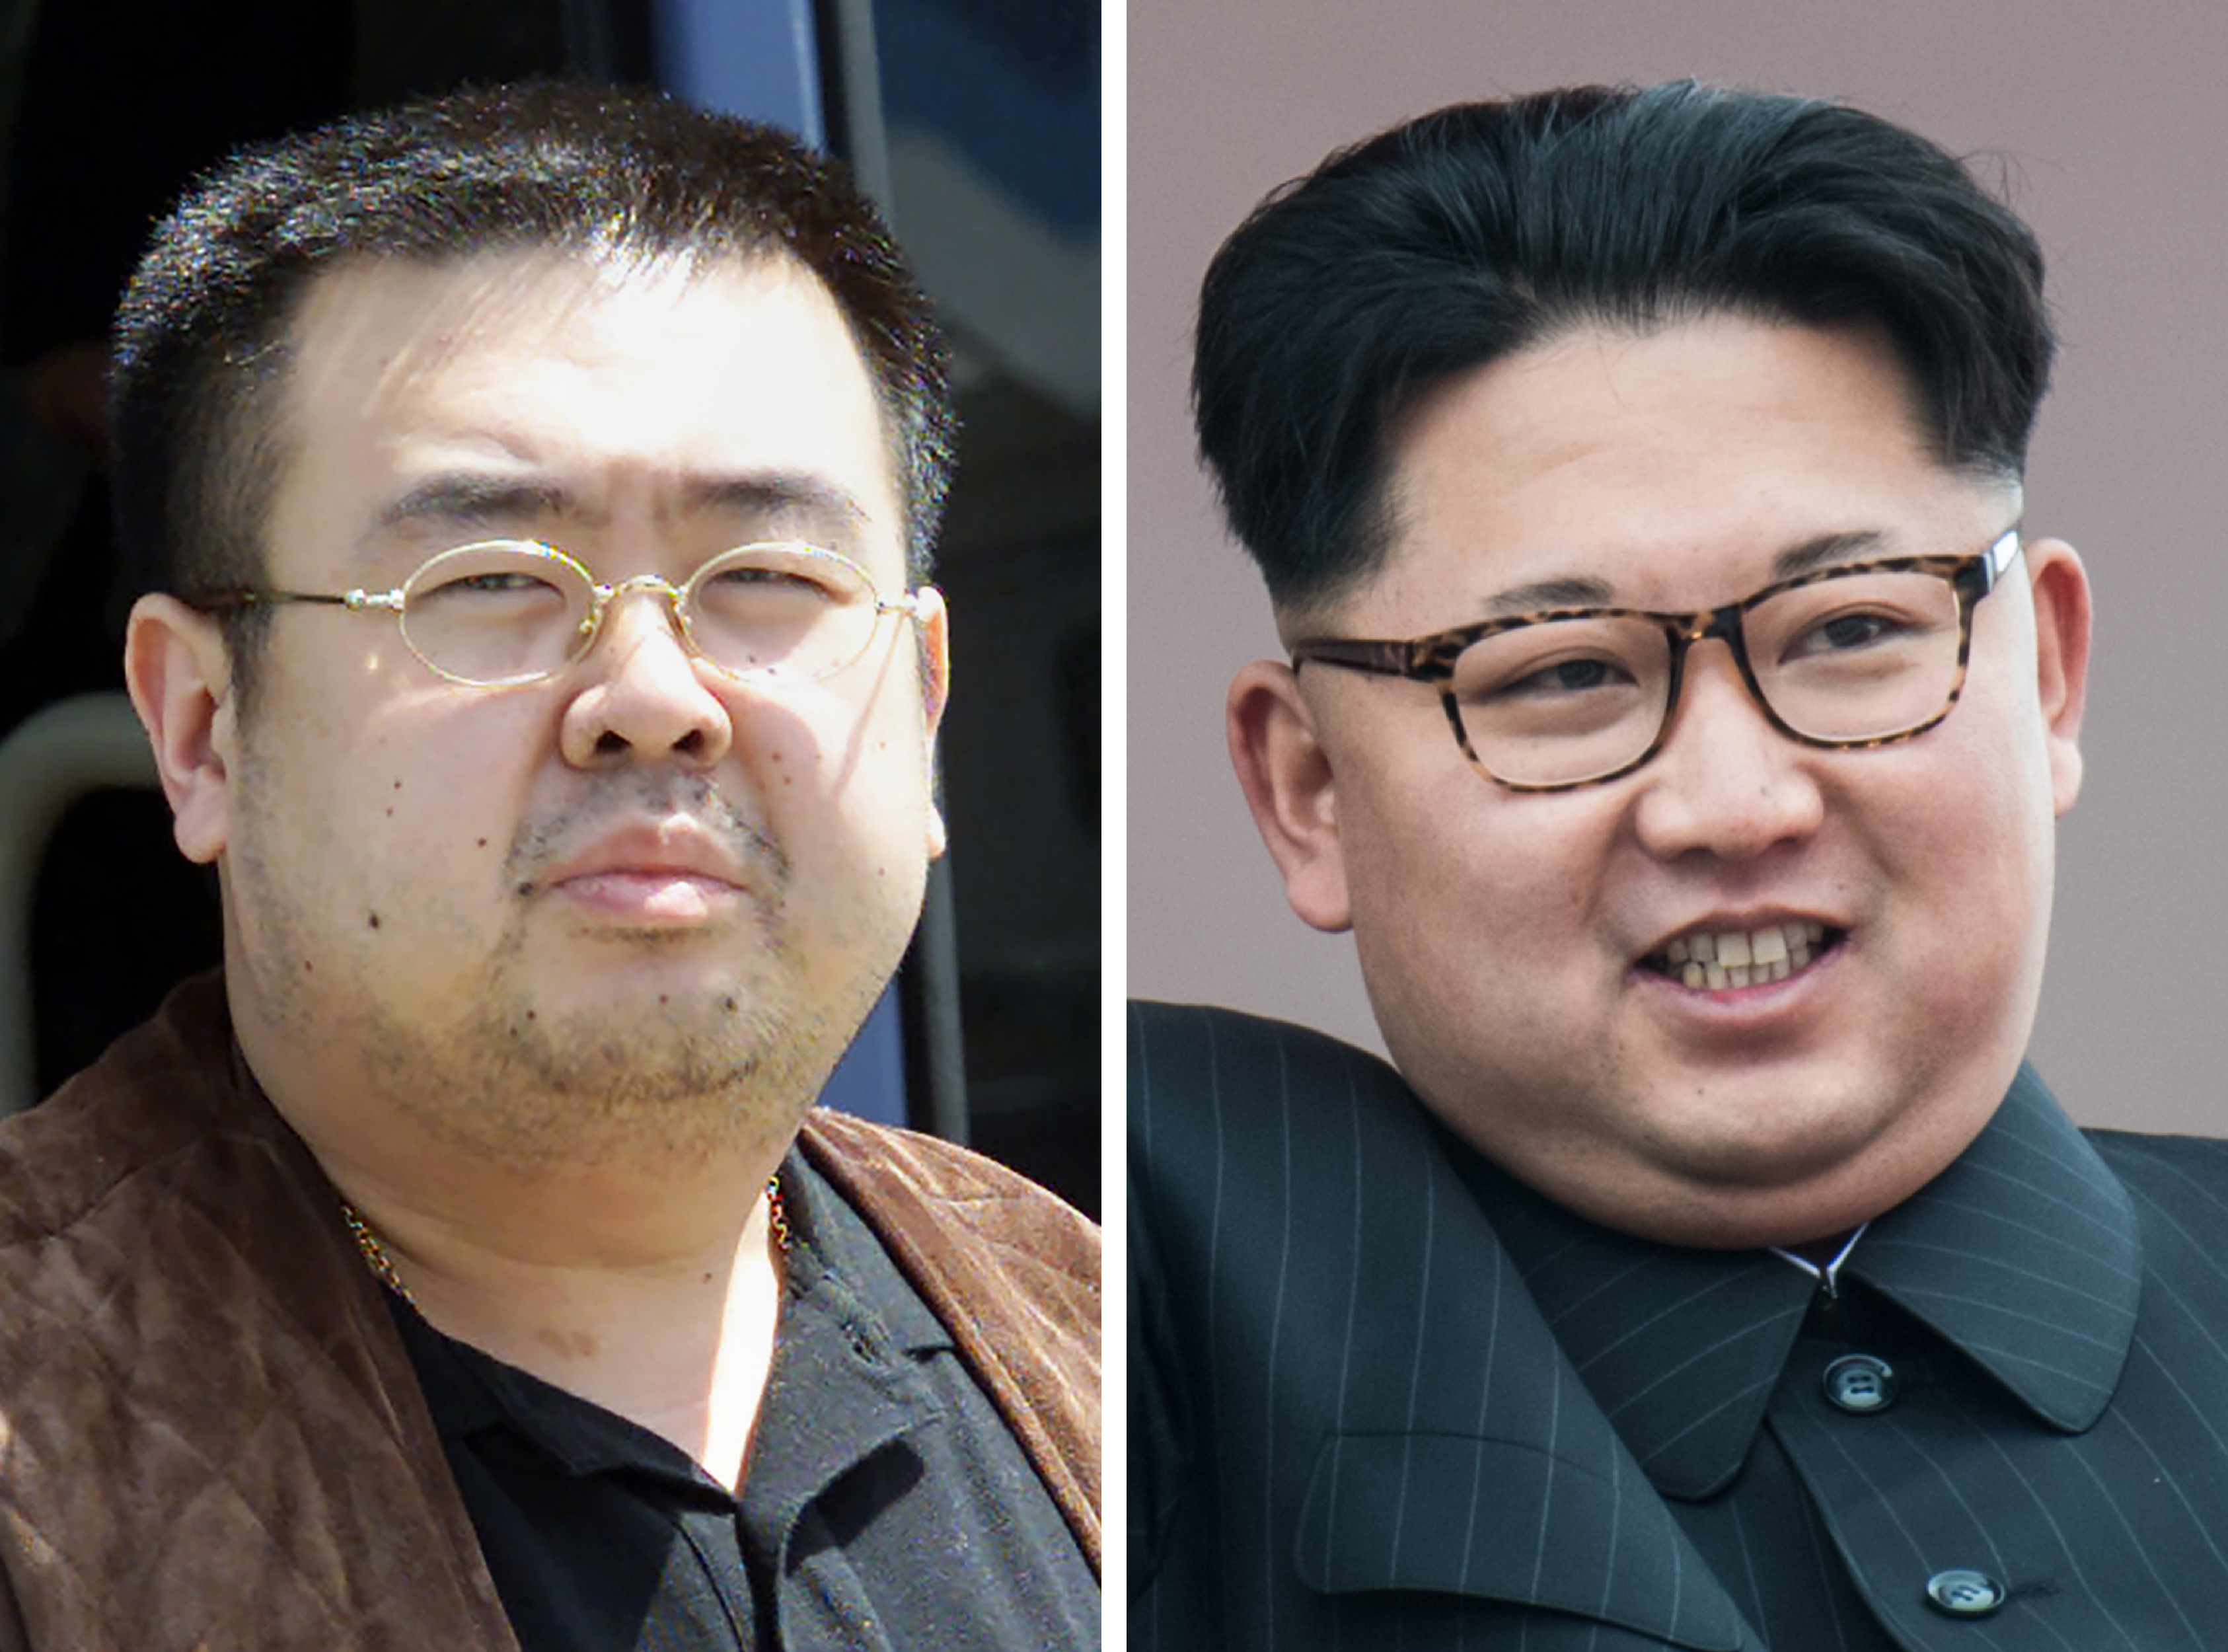 Kim Jong Nam on the left, and Supreme™ Leader Kim Jong Un on the right. Image from Time